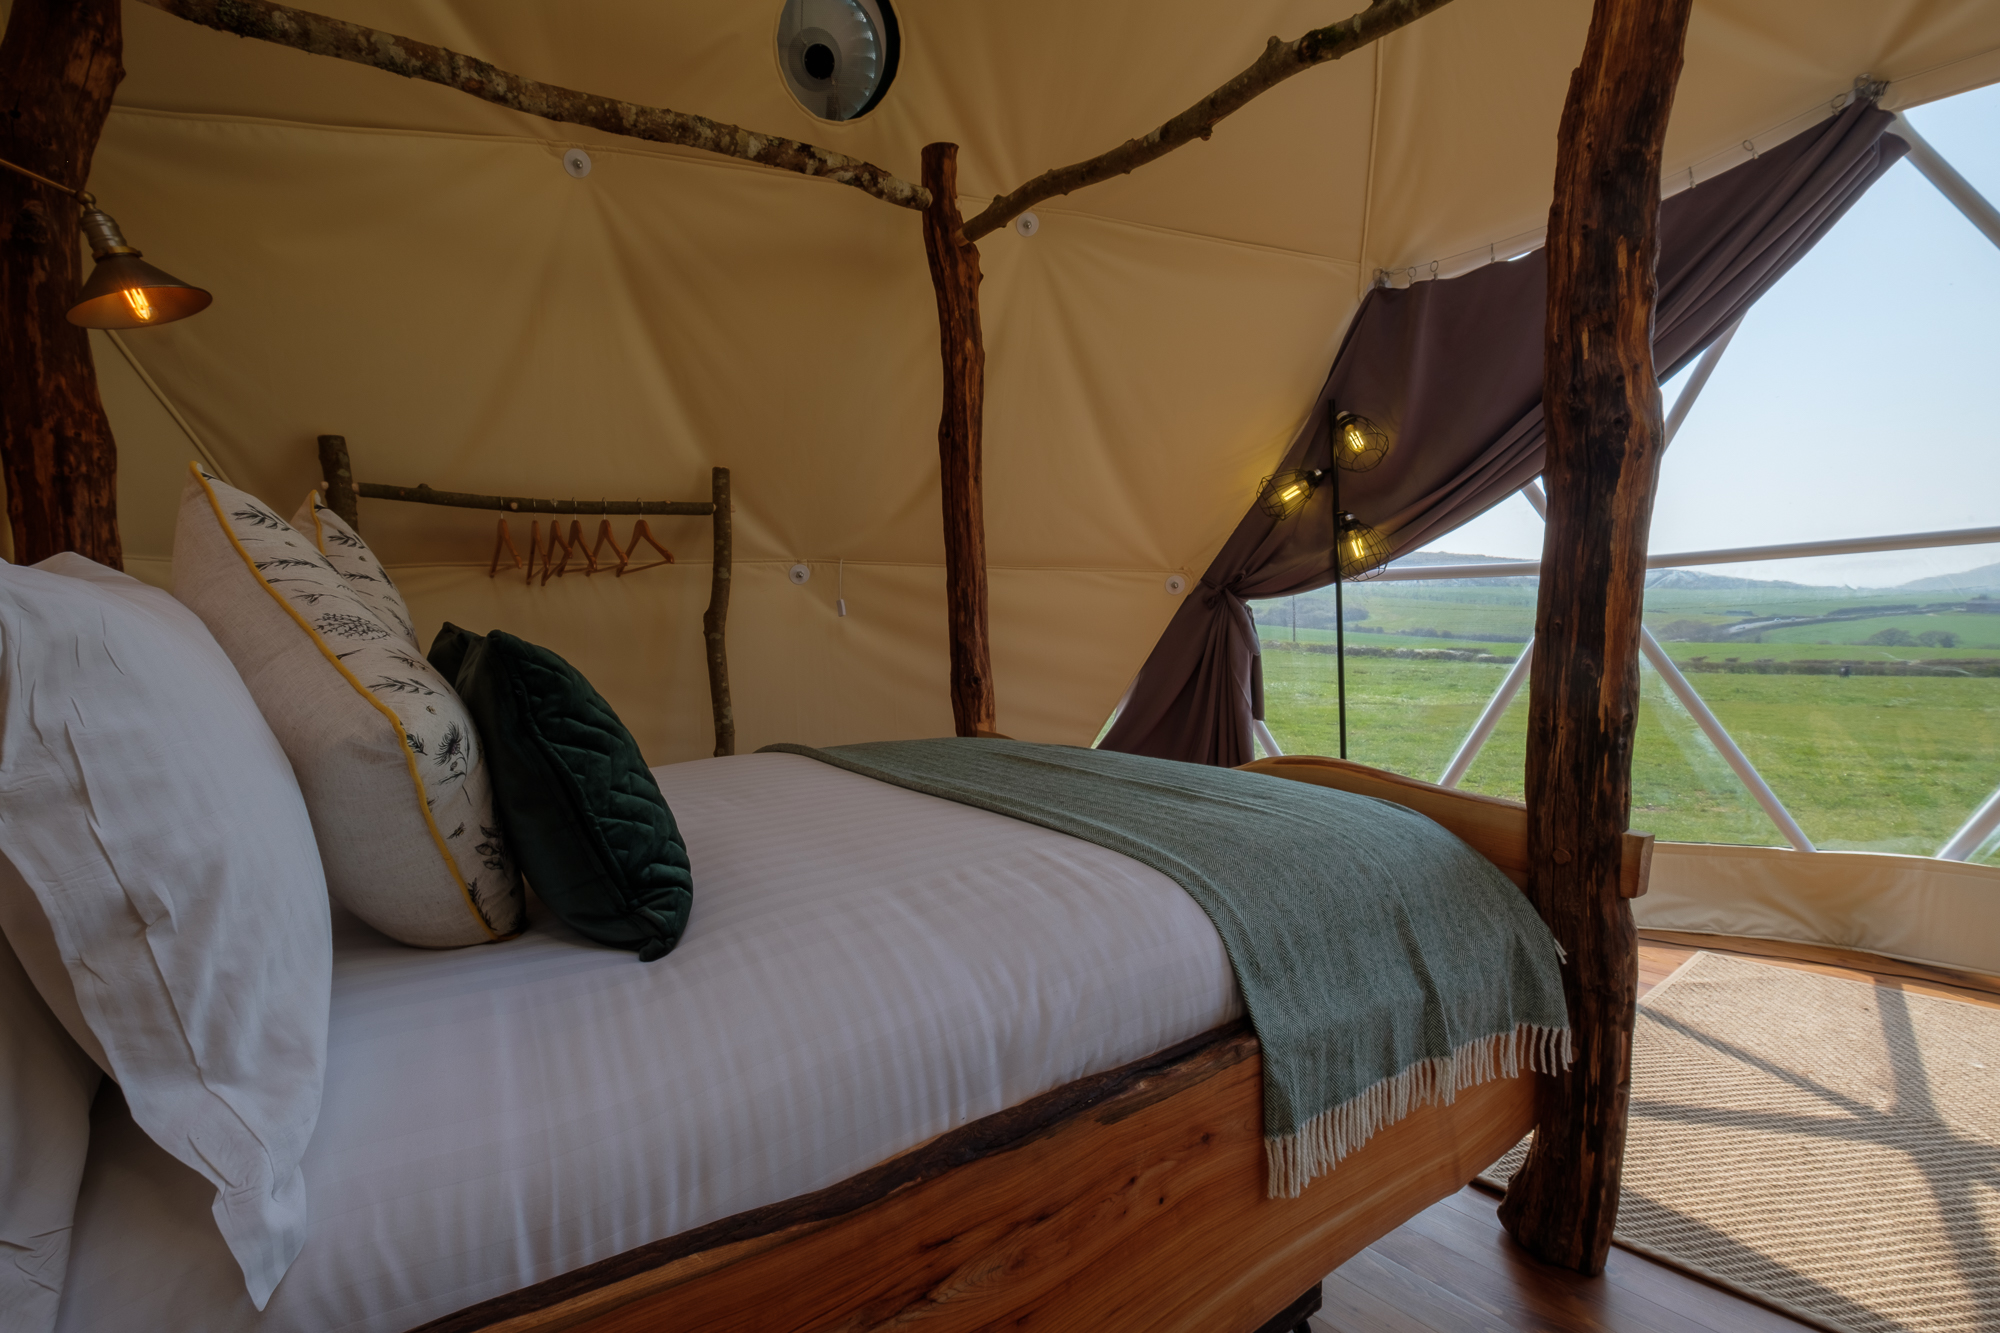 Glamping in New Dome at Tom's Eco Lodge Isle of Wight